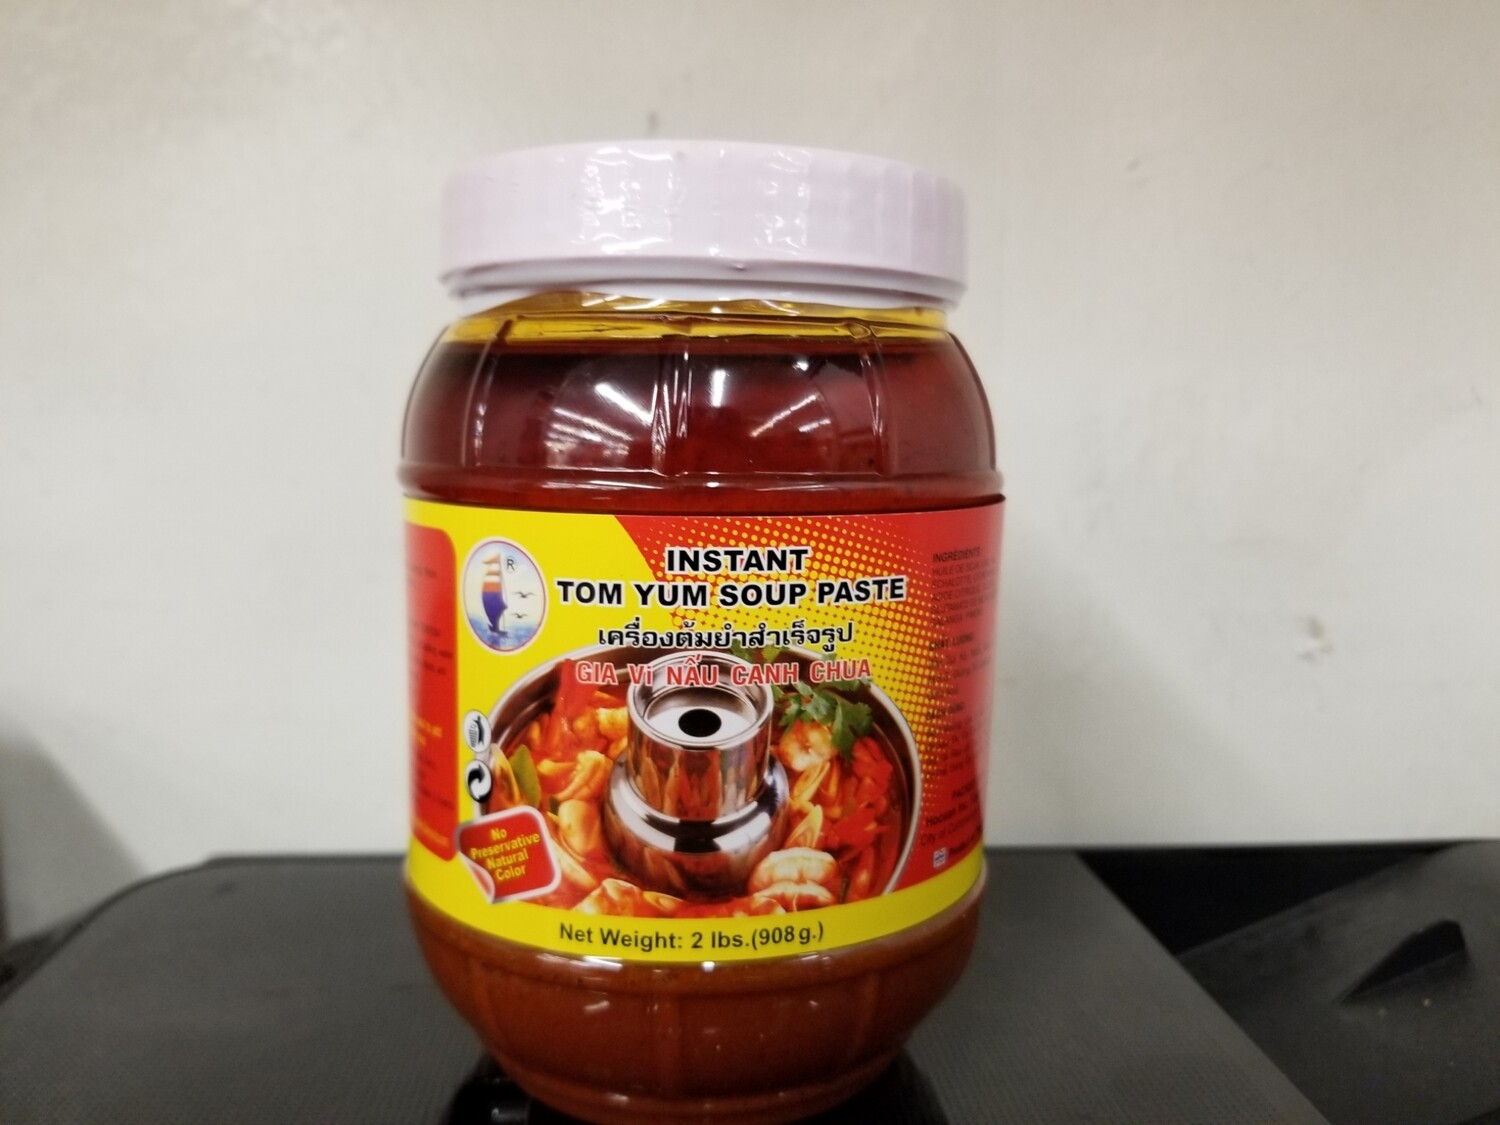 BOAT INSTANT TOM YUM SOUP PASTE